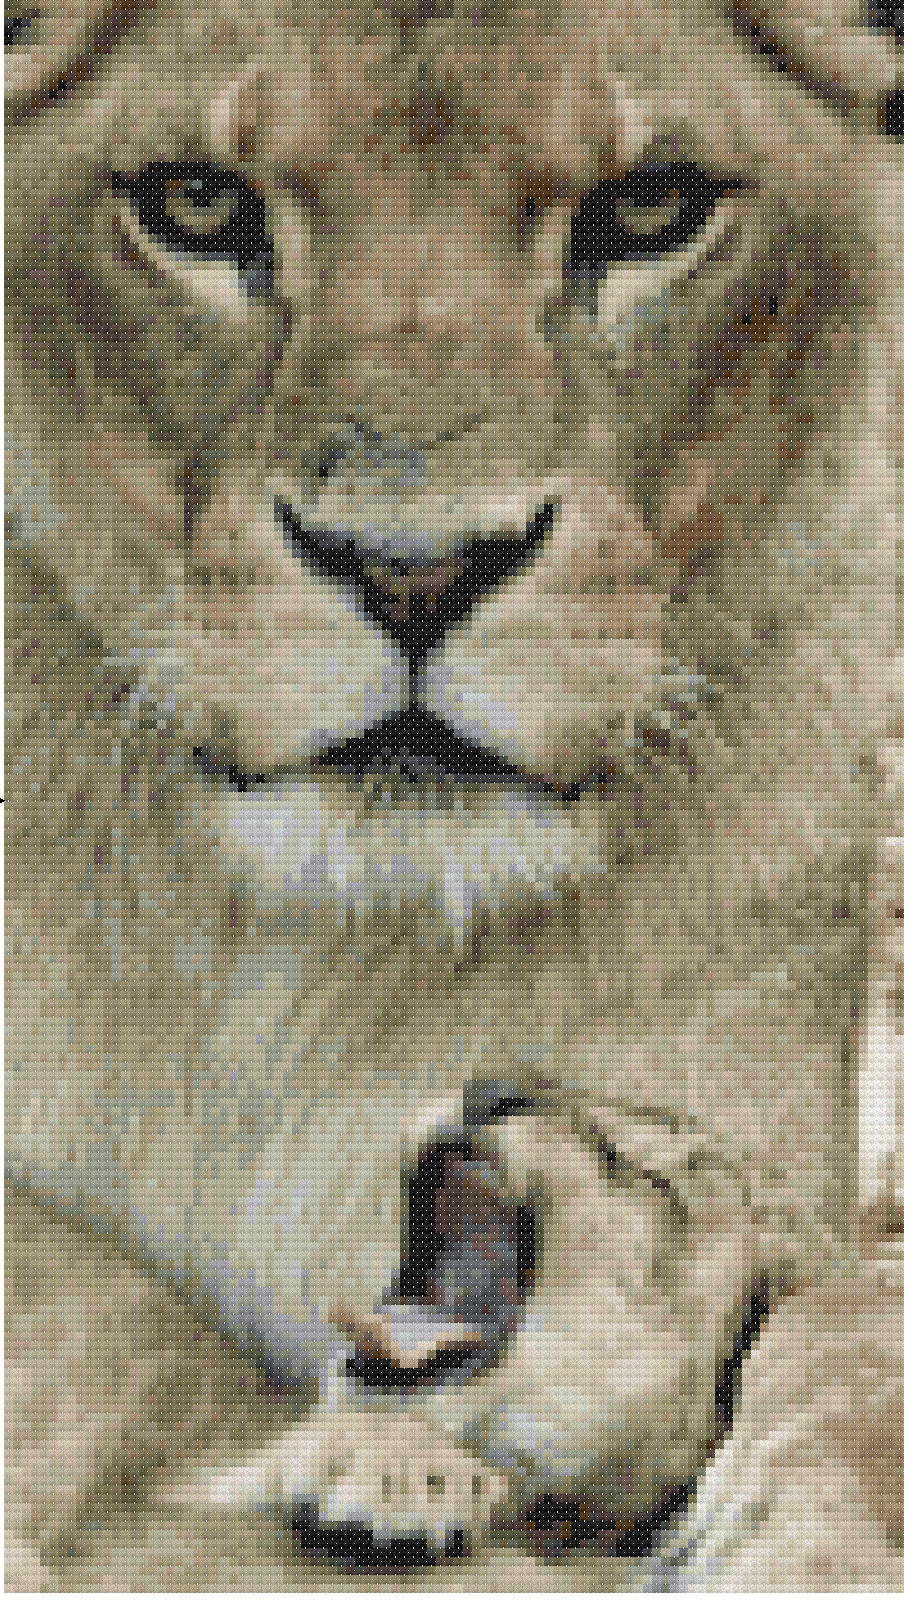 Lioness and Cub Cross Stitch KIT from CSDesignsbyLeah